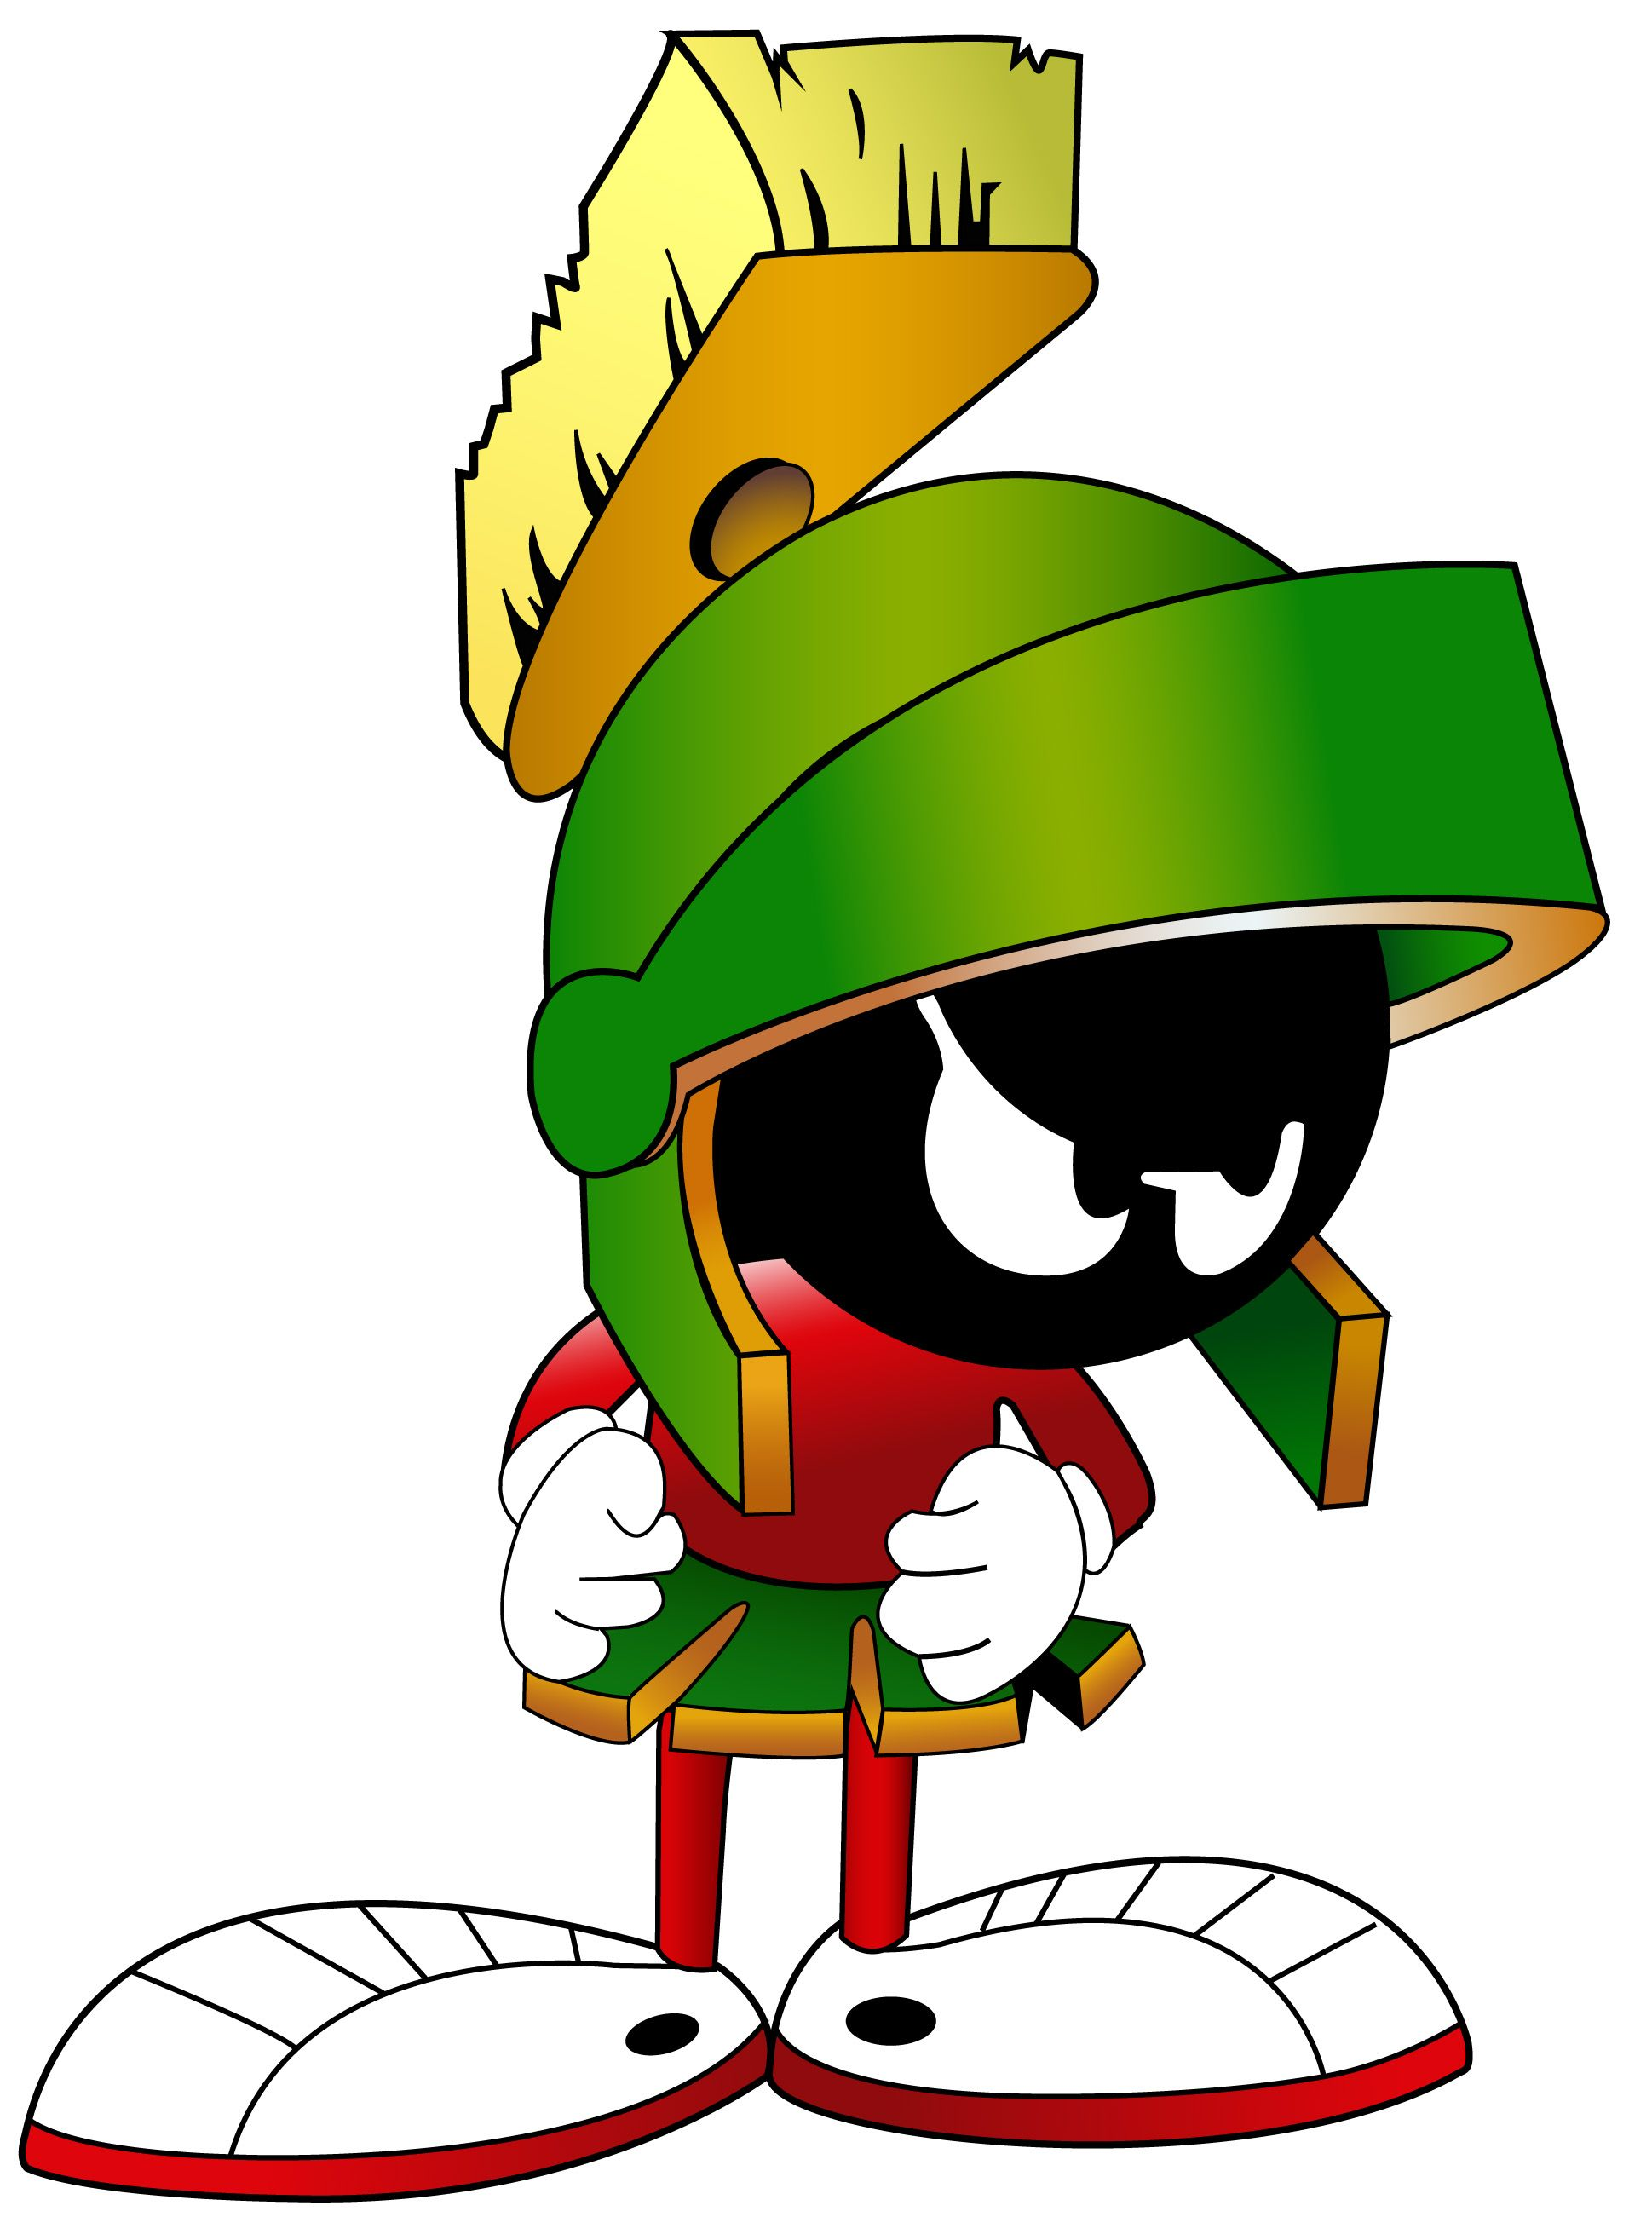 Marvin the Martian (character) | CARTOONS | Looney tunes ...